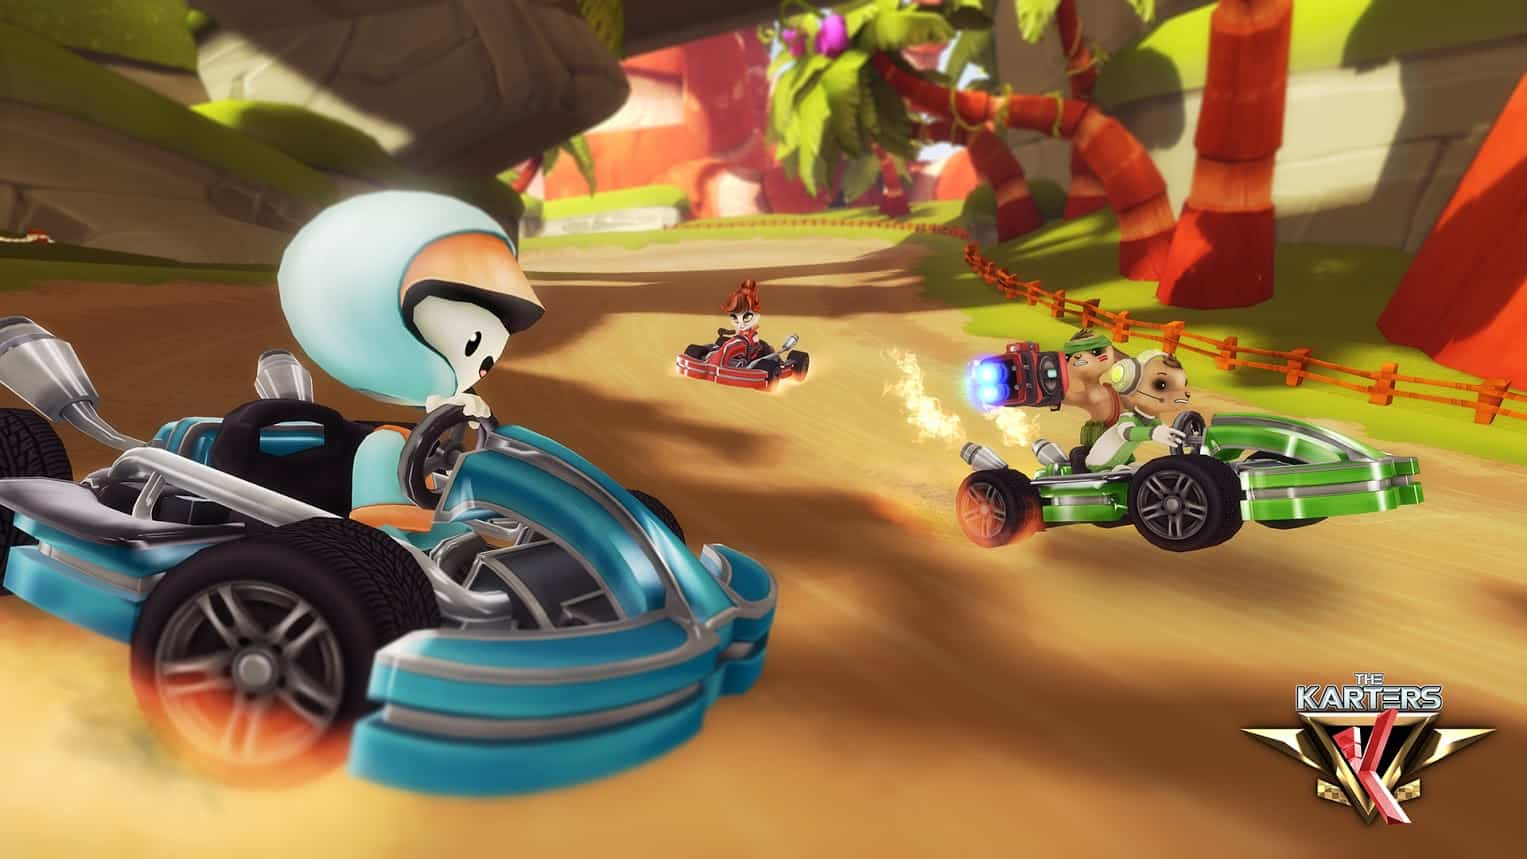 'The Karters' blends Dynamic Cartoon Racing with Serious Attitude